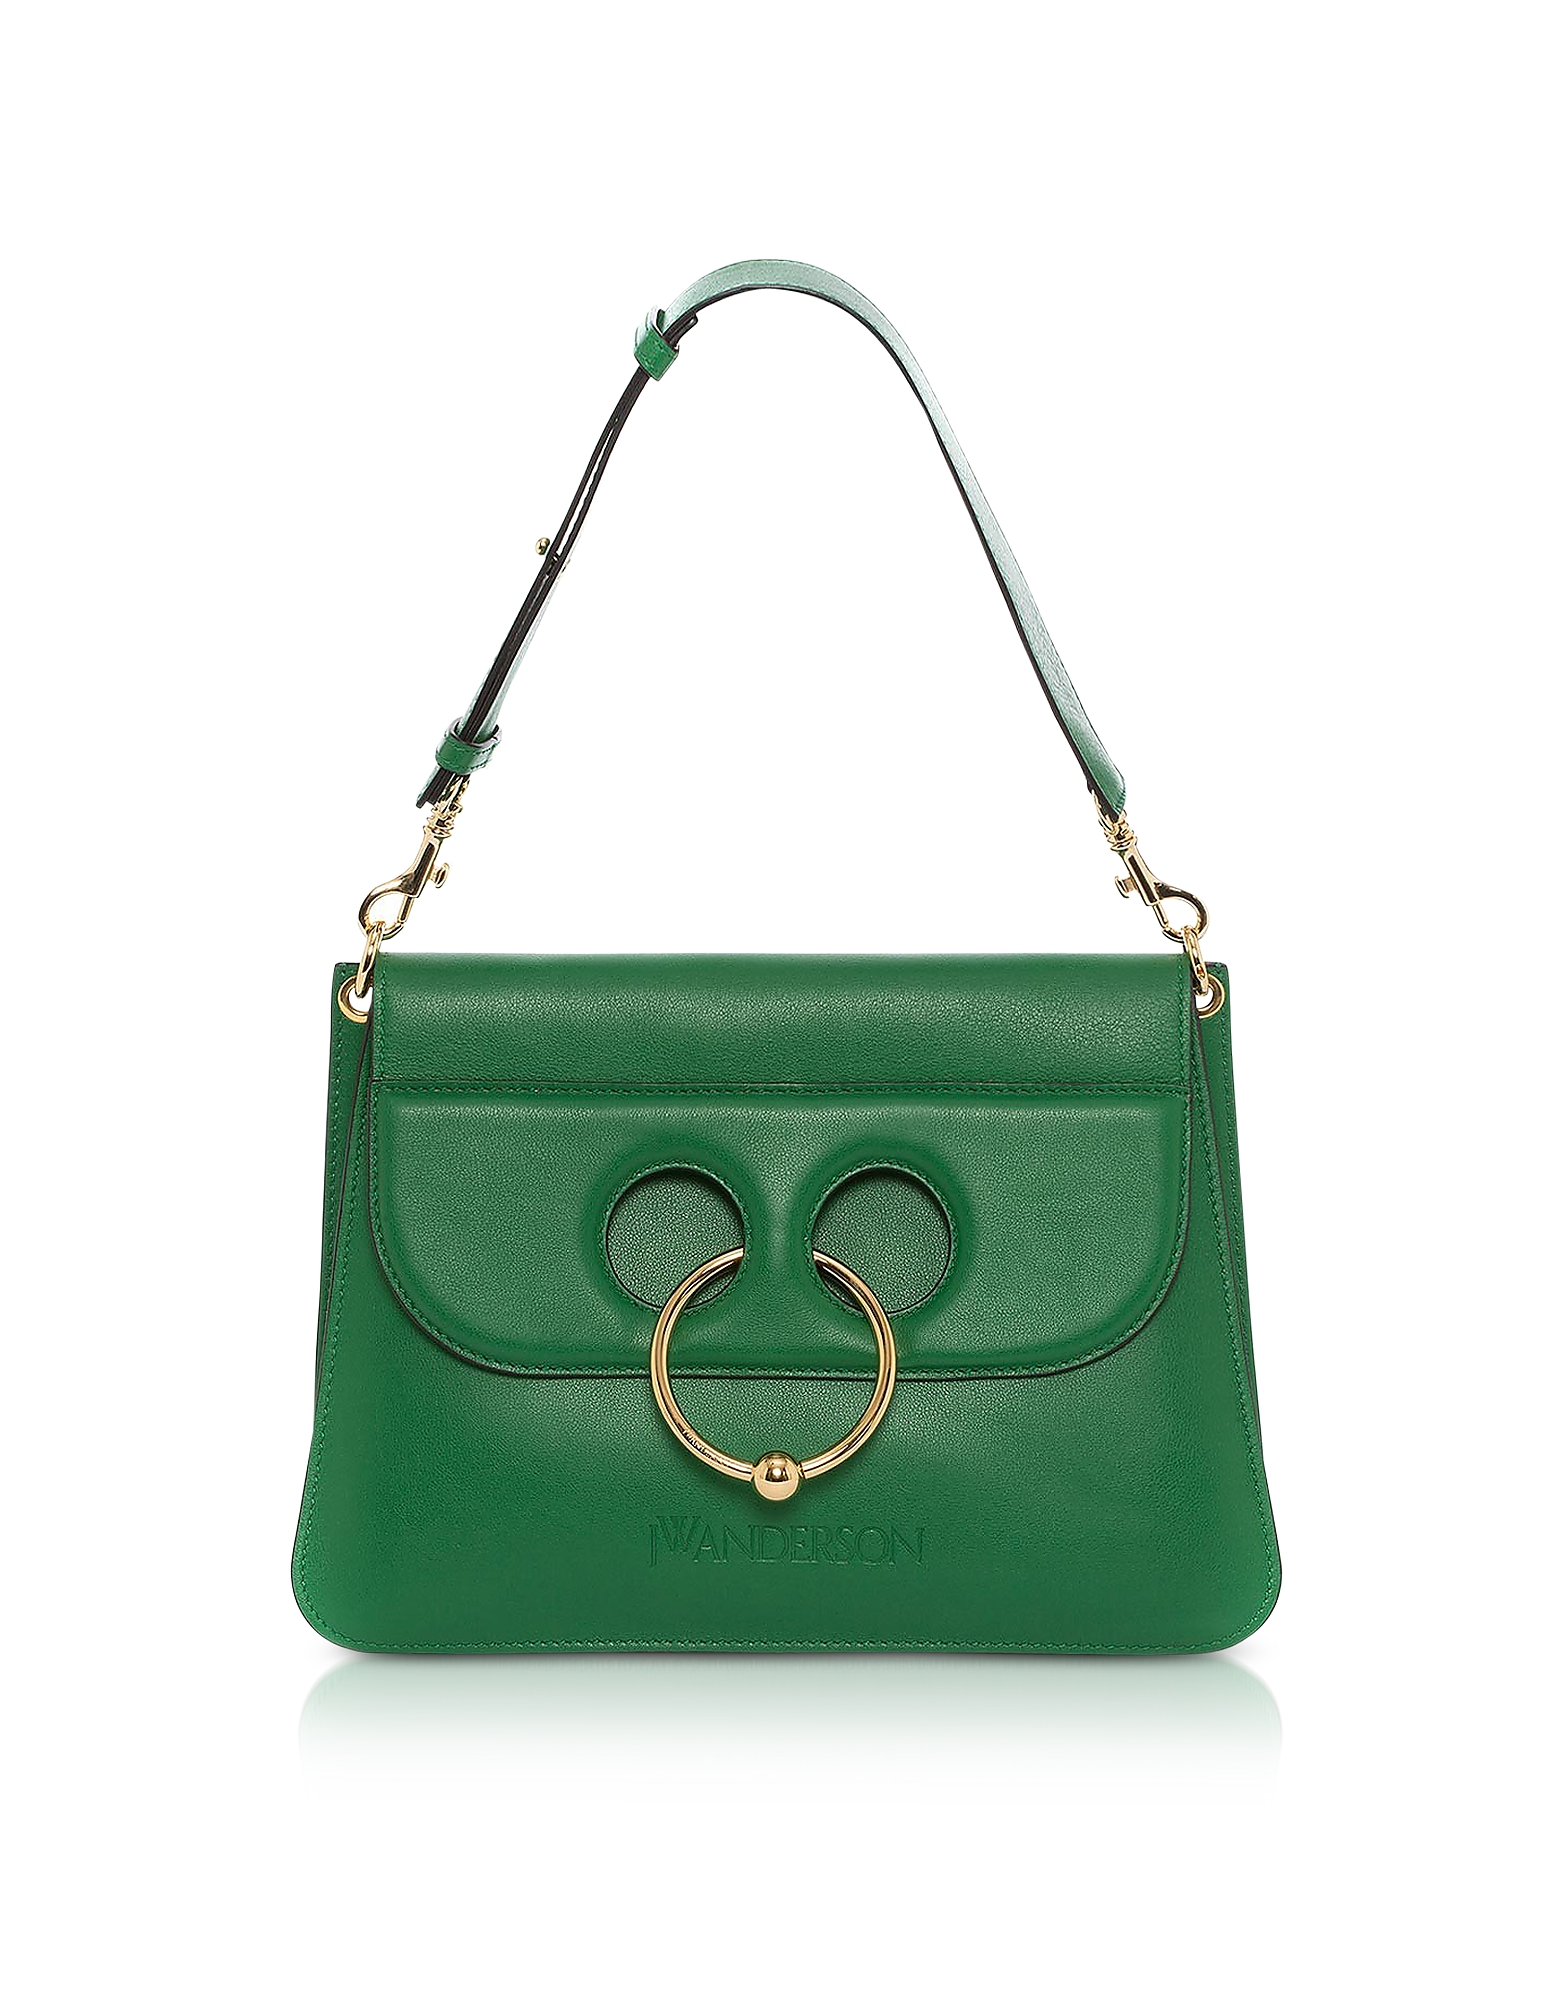 Image of JW Anderson Designer Handbags, Emerald Green Leather Medium Pierce Bag